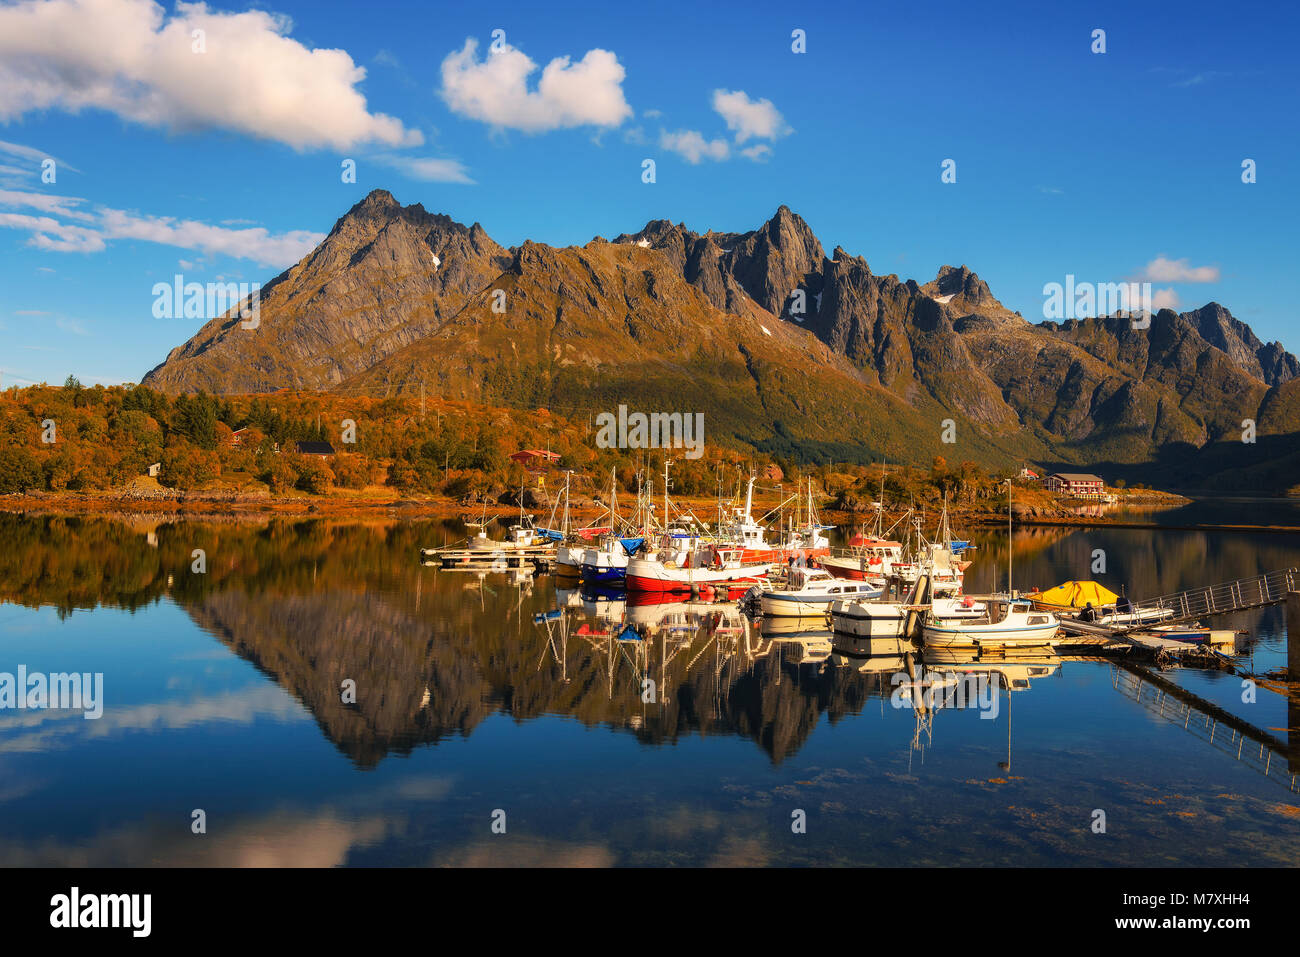 Fishing boats and yachts on Lofoten islands in Norway - Stock Image